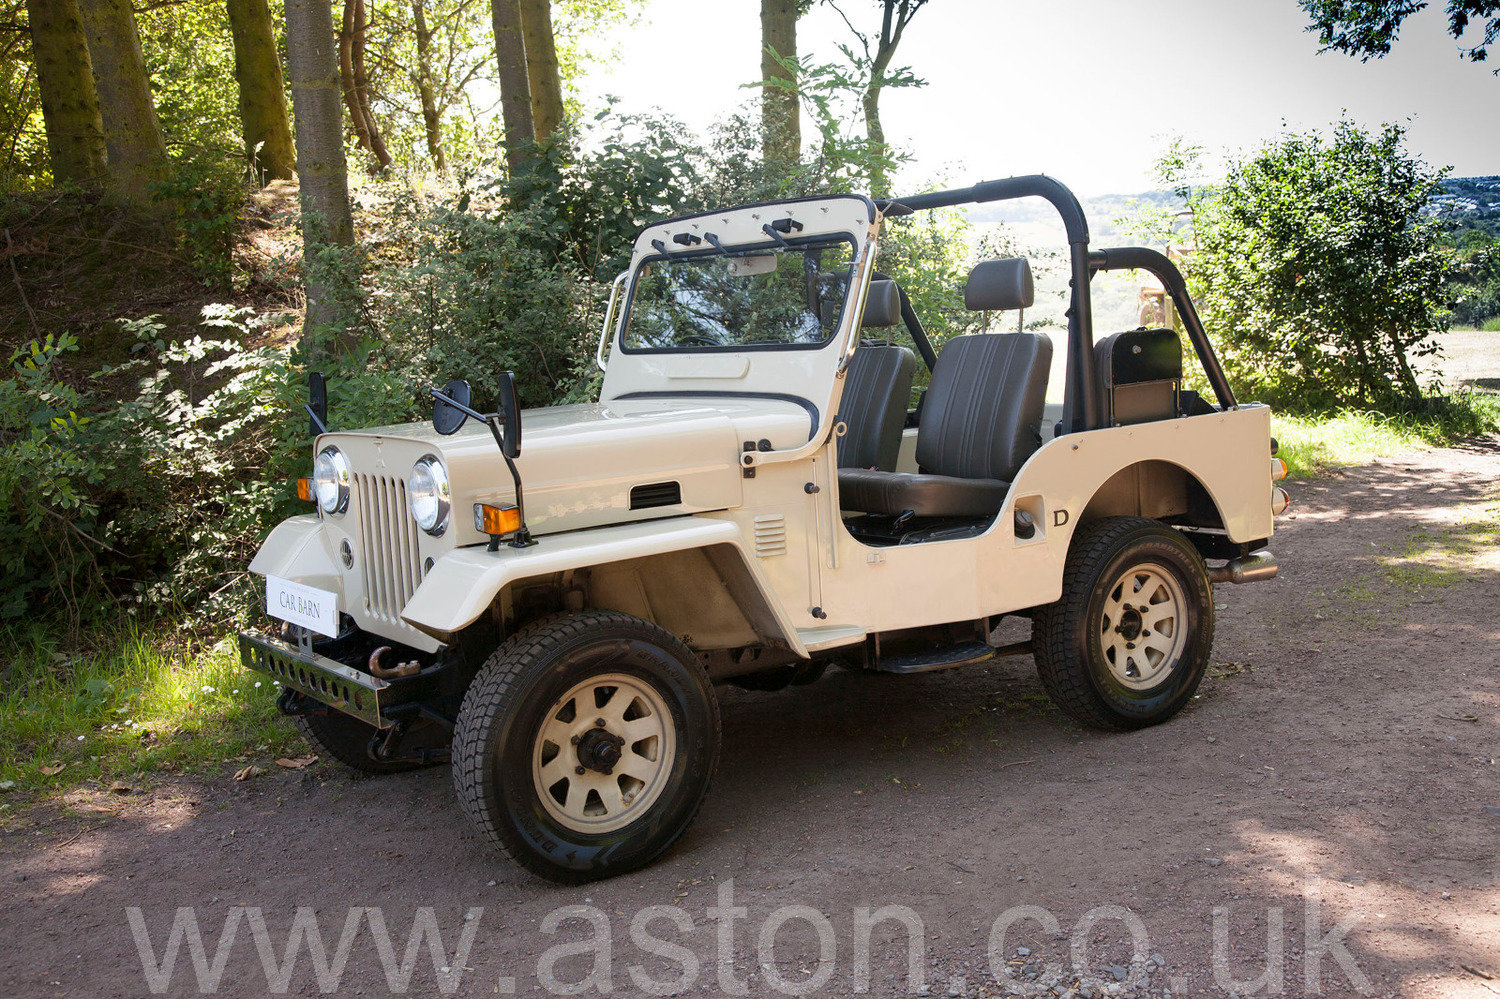 1998 Mitsubishi Jeep 2.7 TD (J55) For Sale (picture 2 of 6)